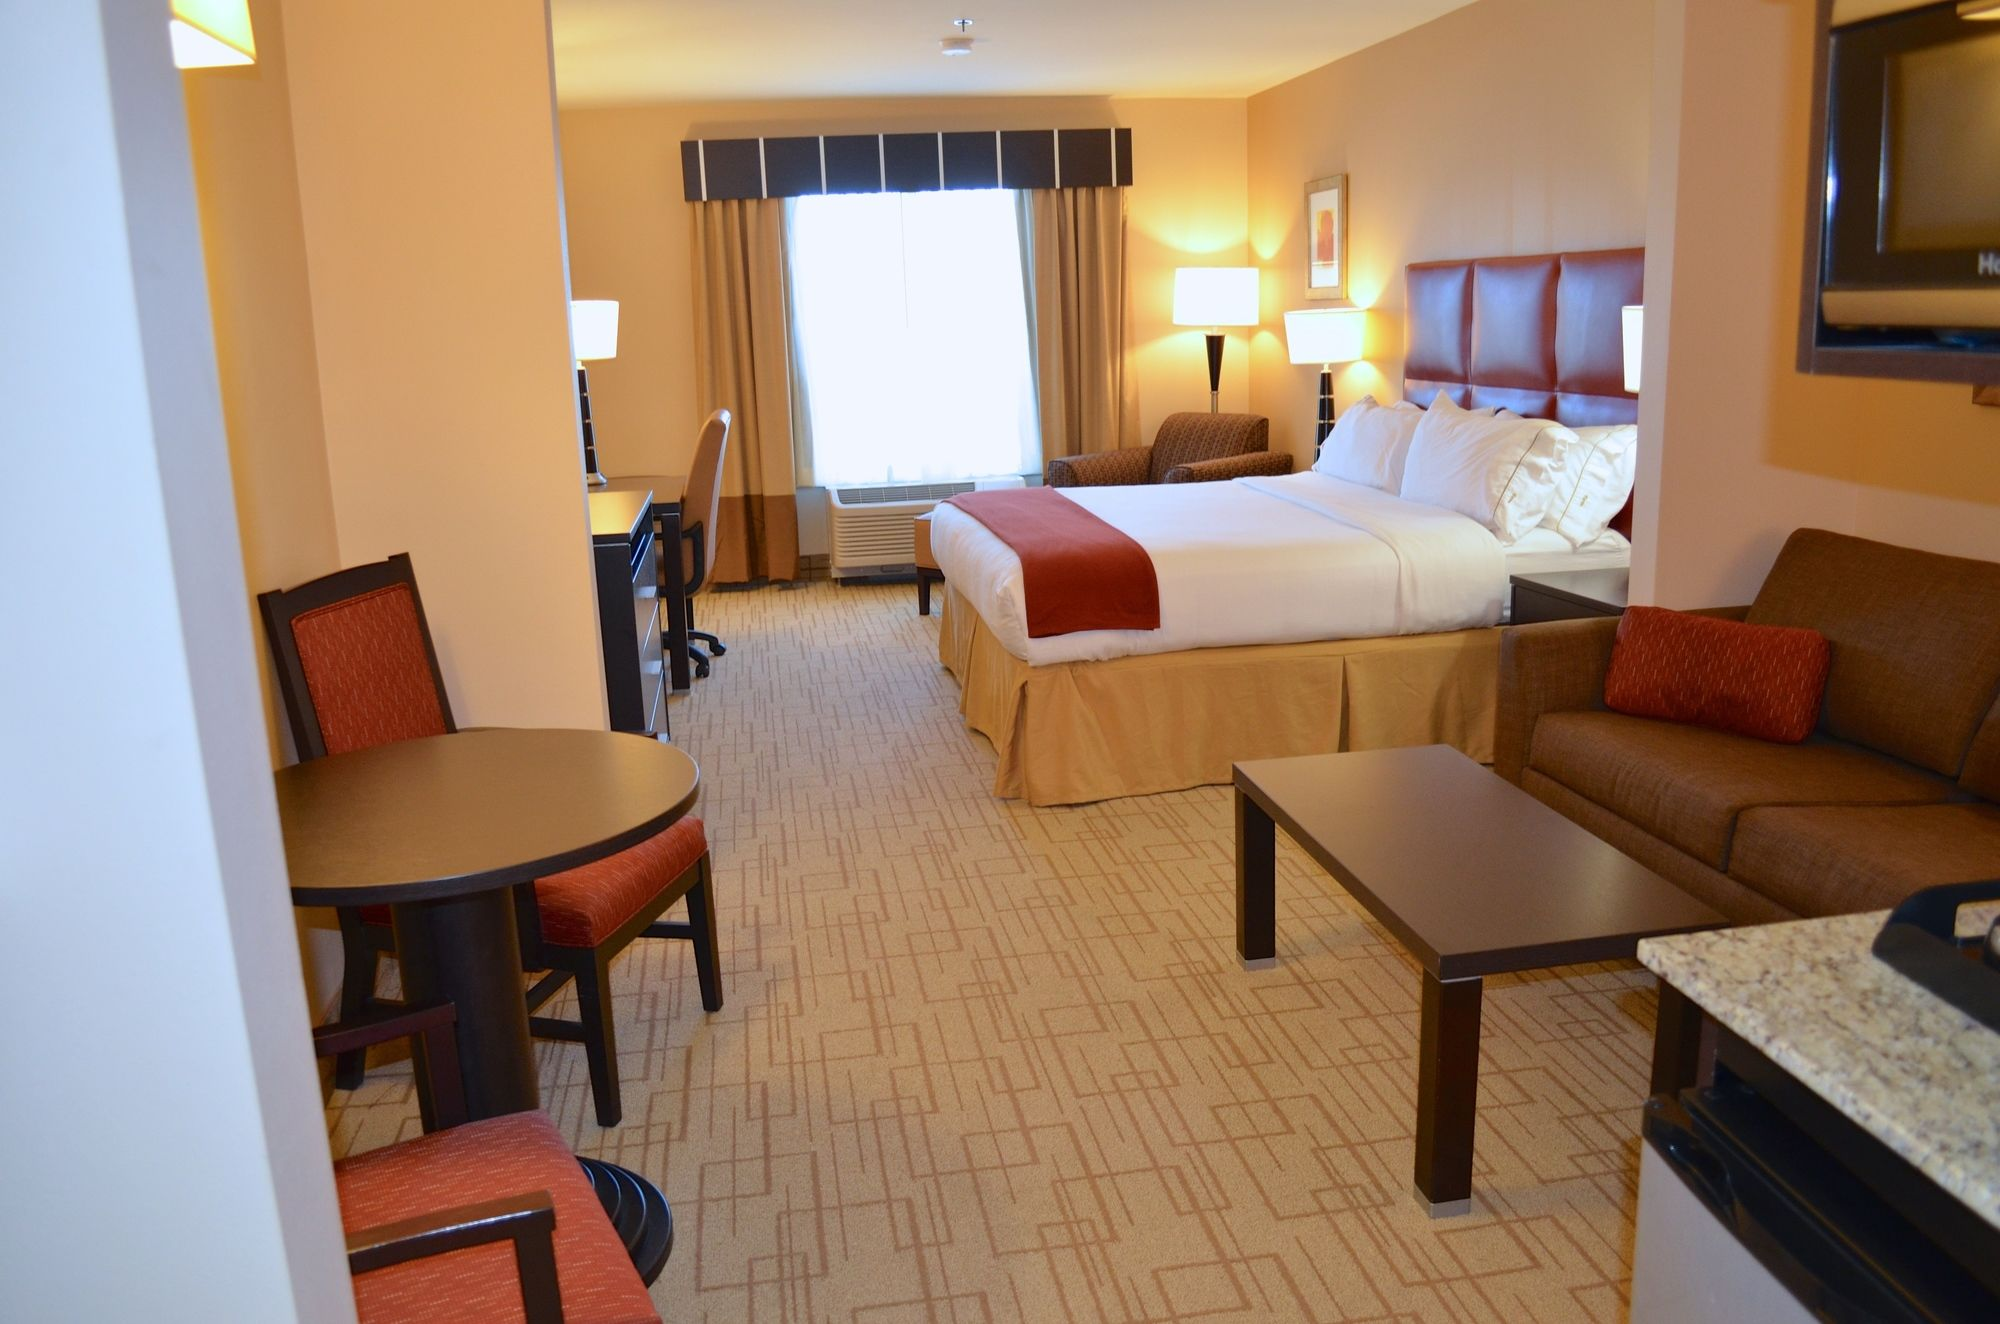 Holiday Inn Express Hotel & Suites Smithfield - Selma I -95 in Smithfield, NC